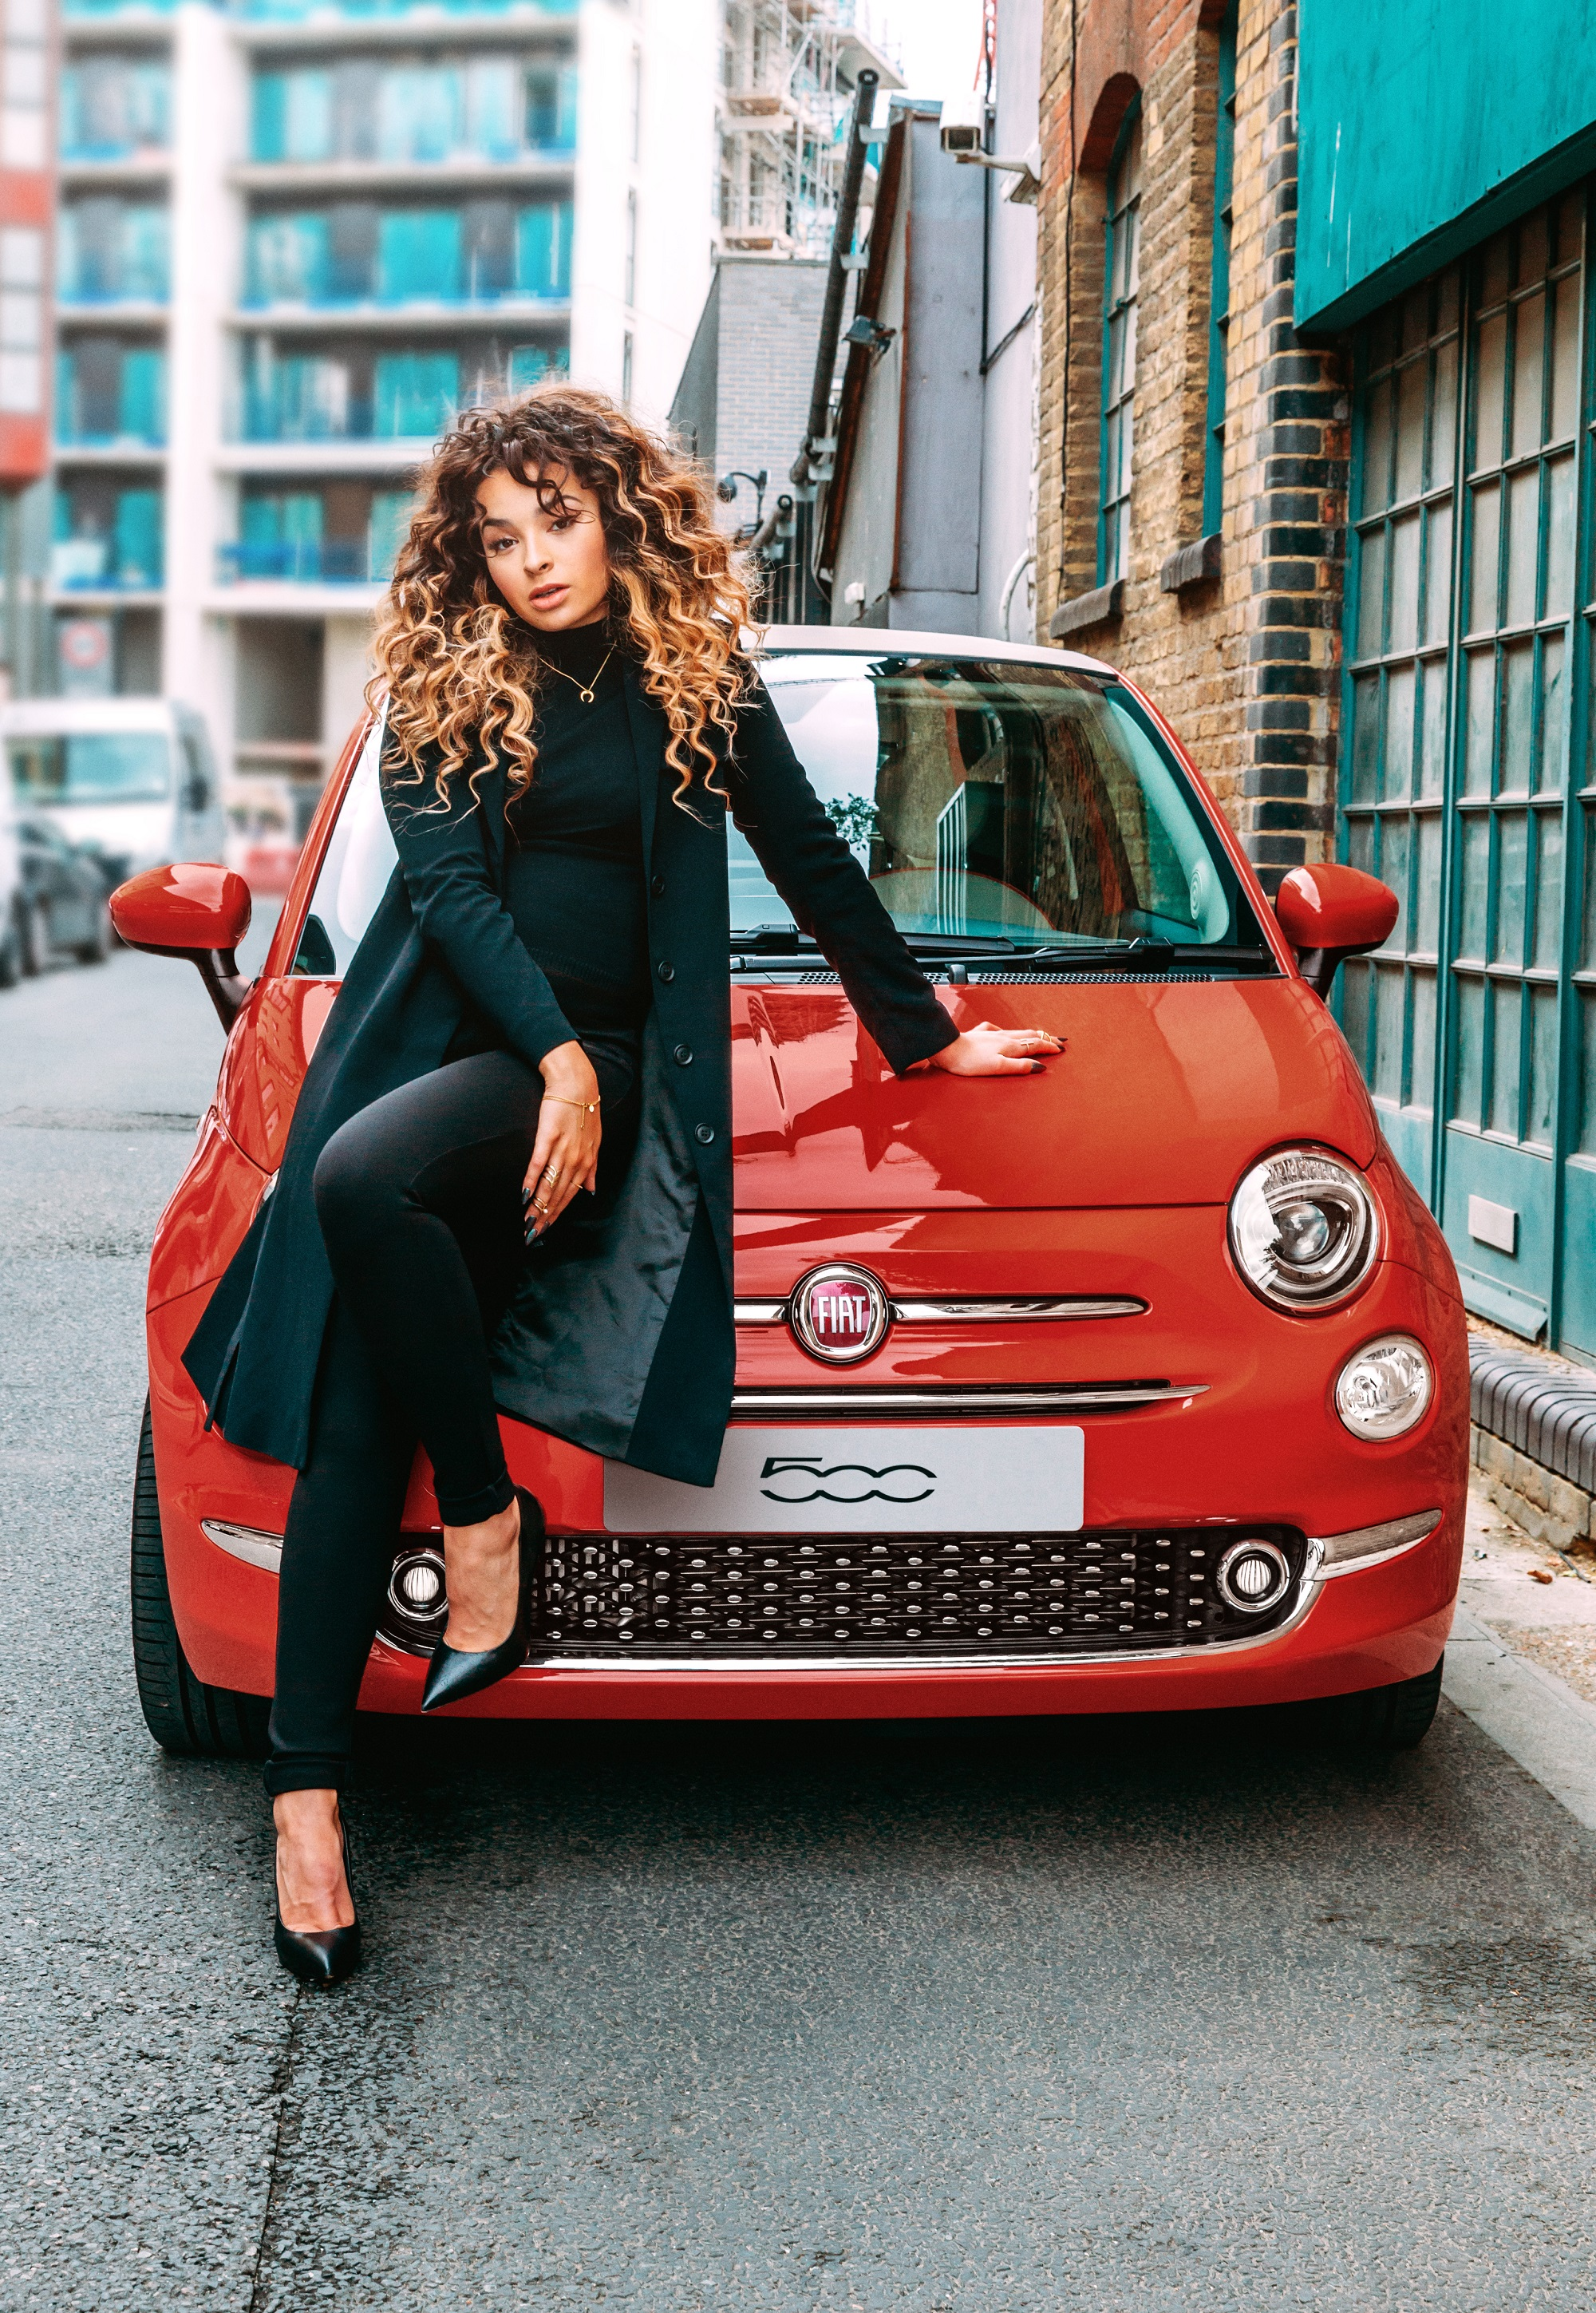 Fiat 500 to perform with Ella Eyre on stage